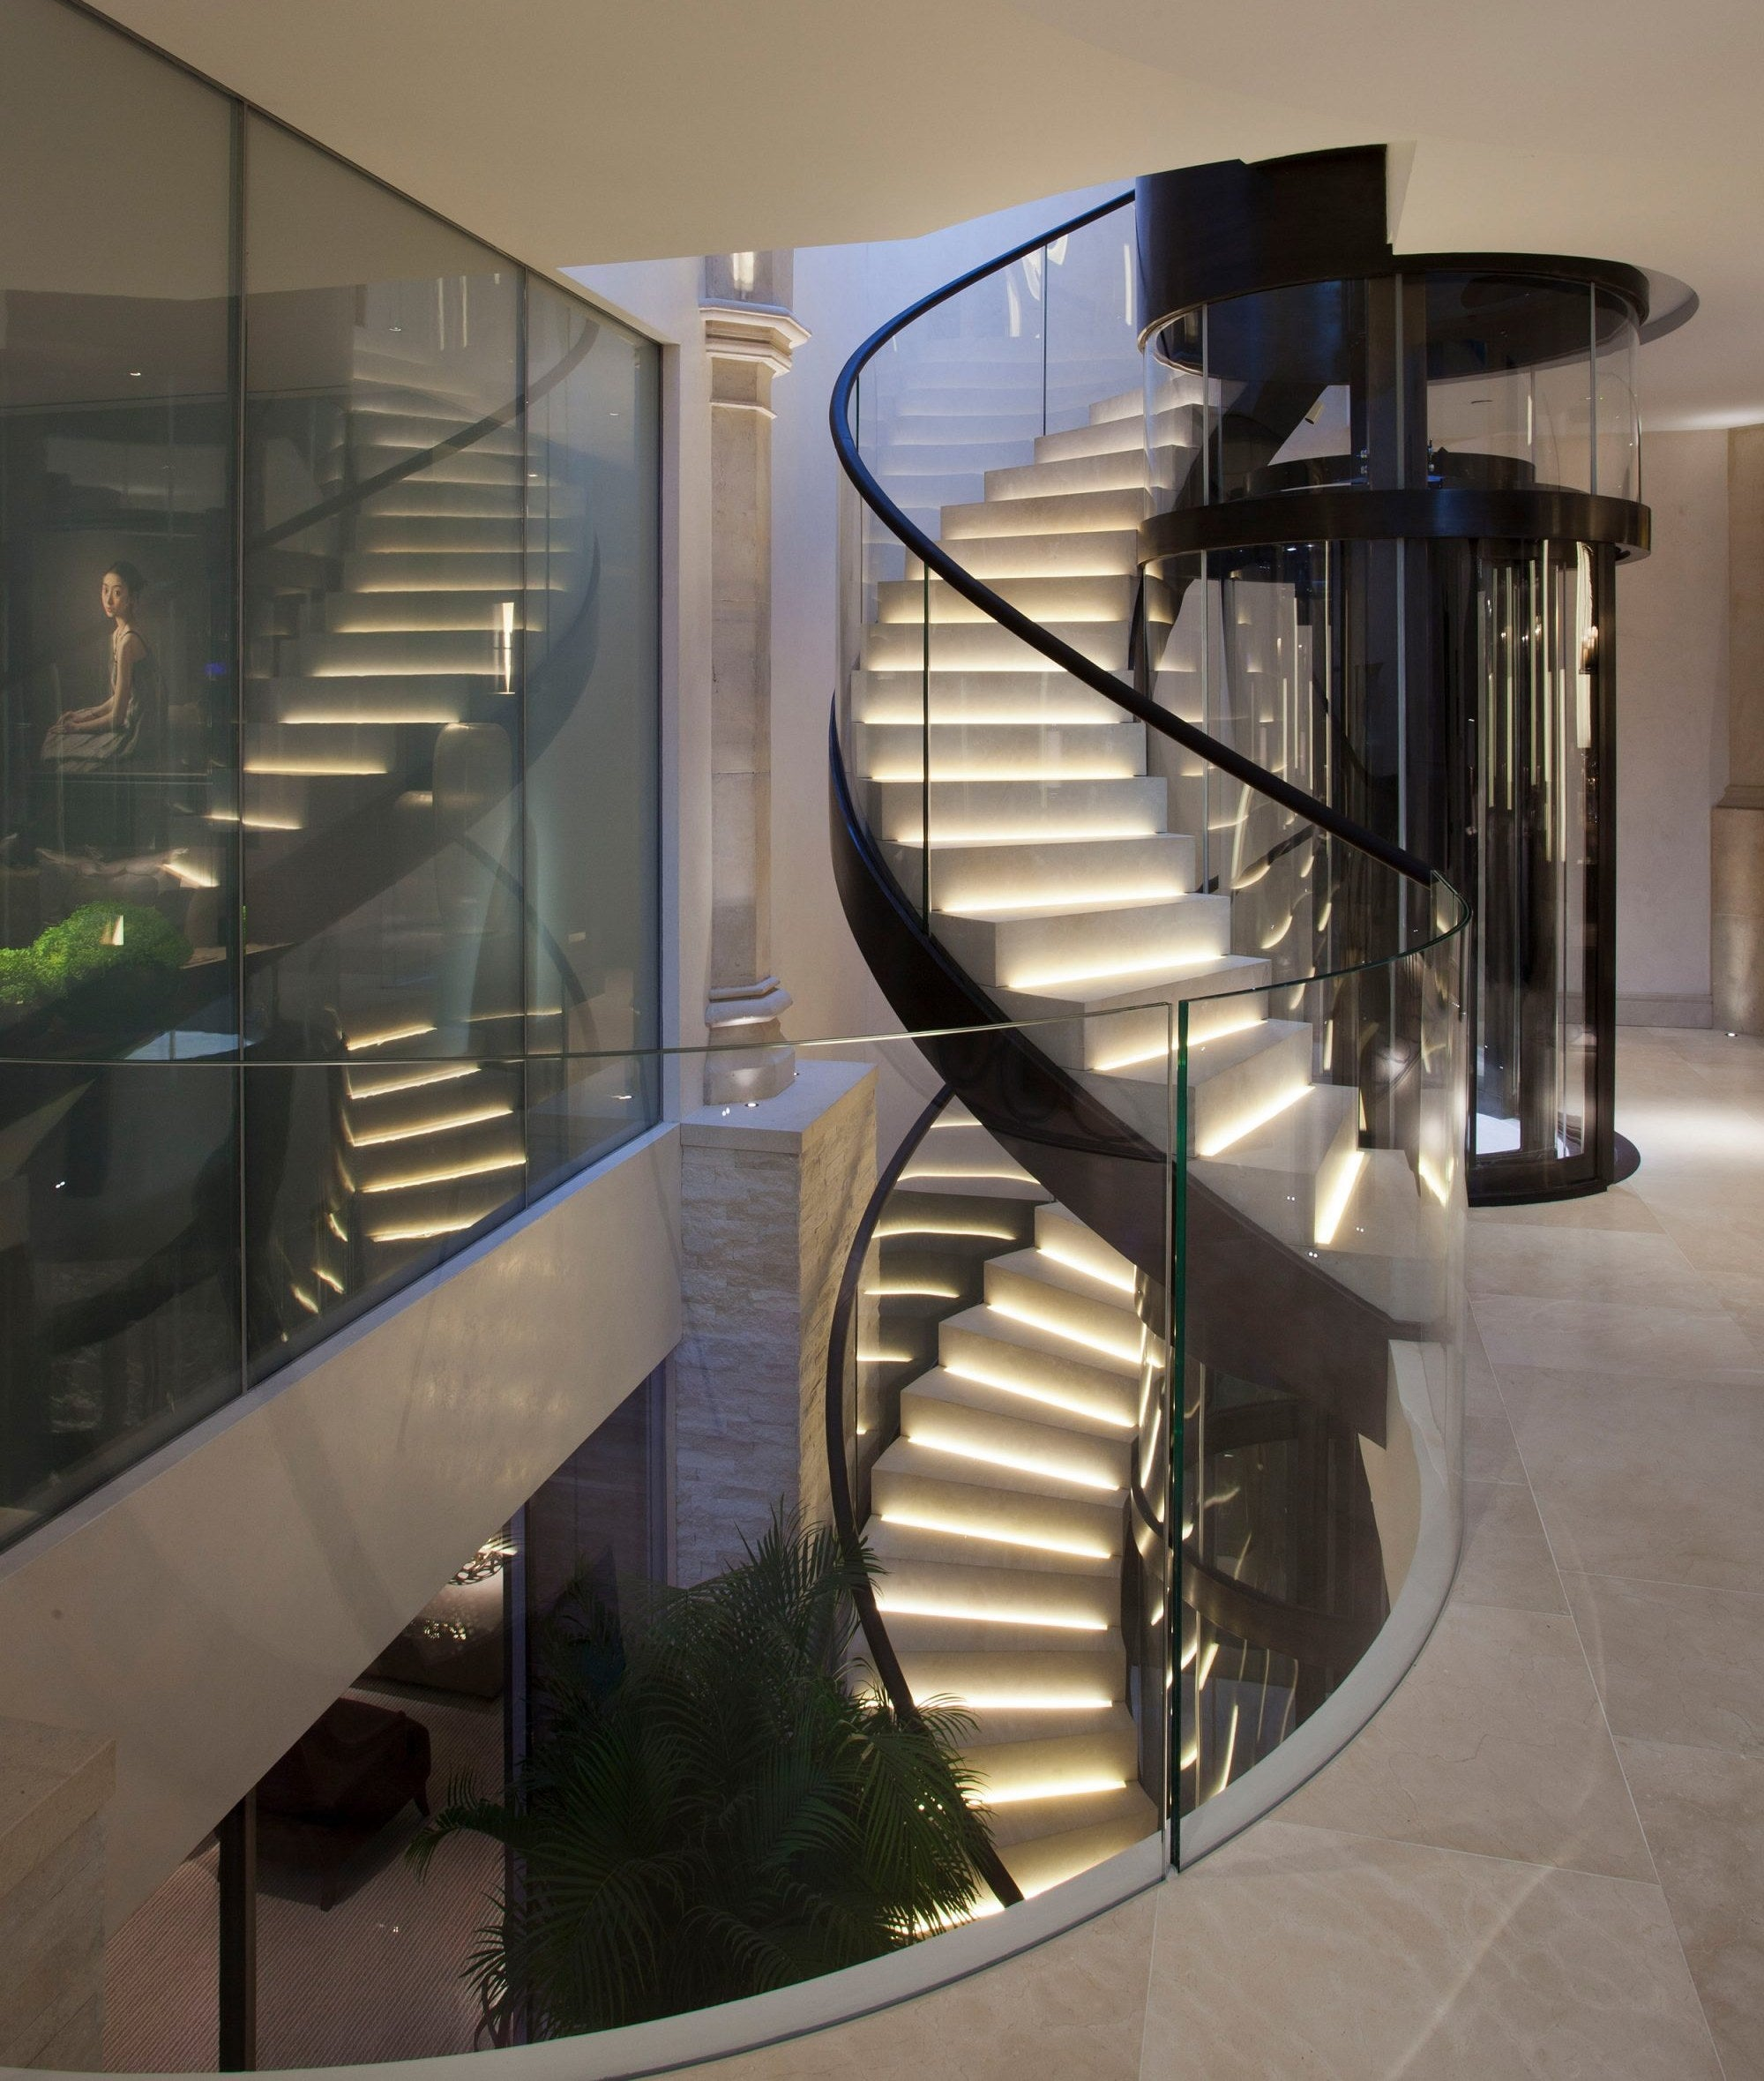 51 Stunning Staircase Design Ideas: 8 Beautiful Staircase Ideas For Your Home